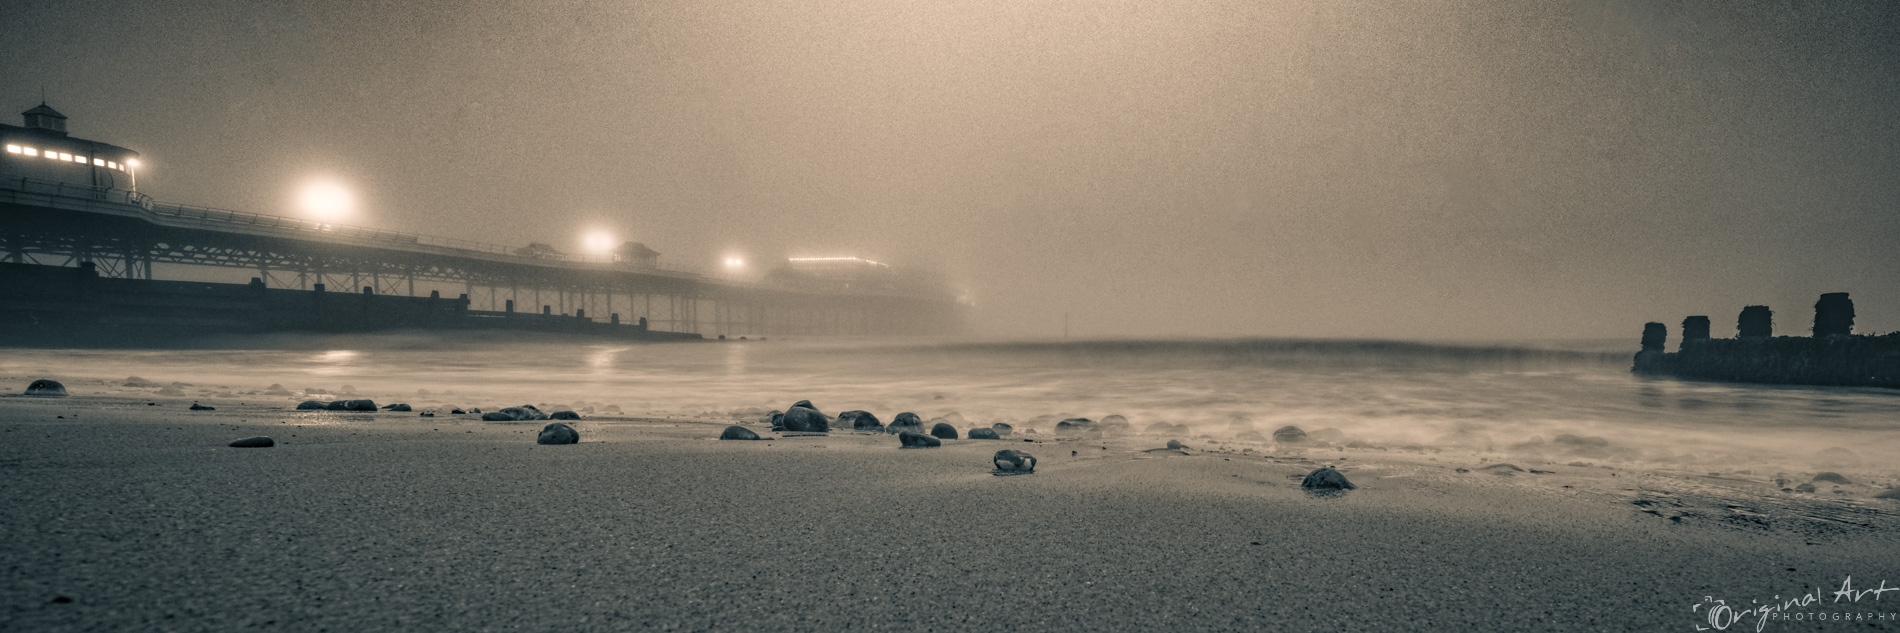 Cromer_on_a_foggy_day-9.jpg